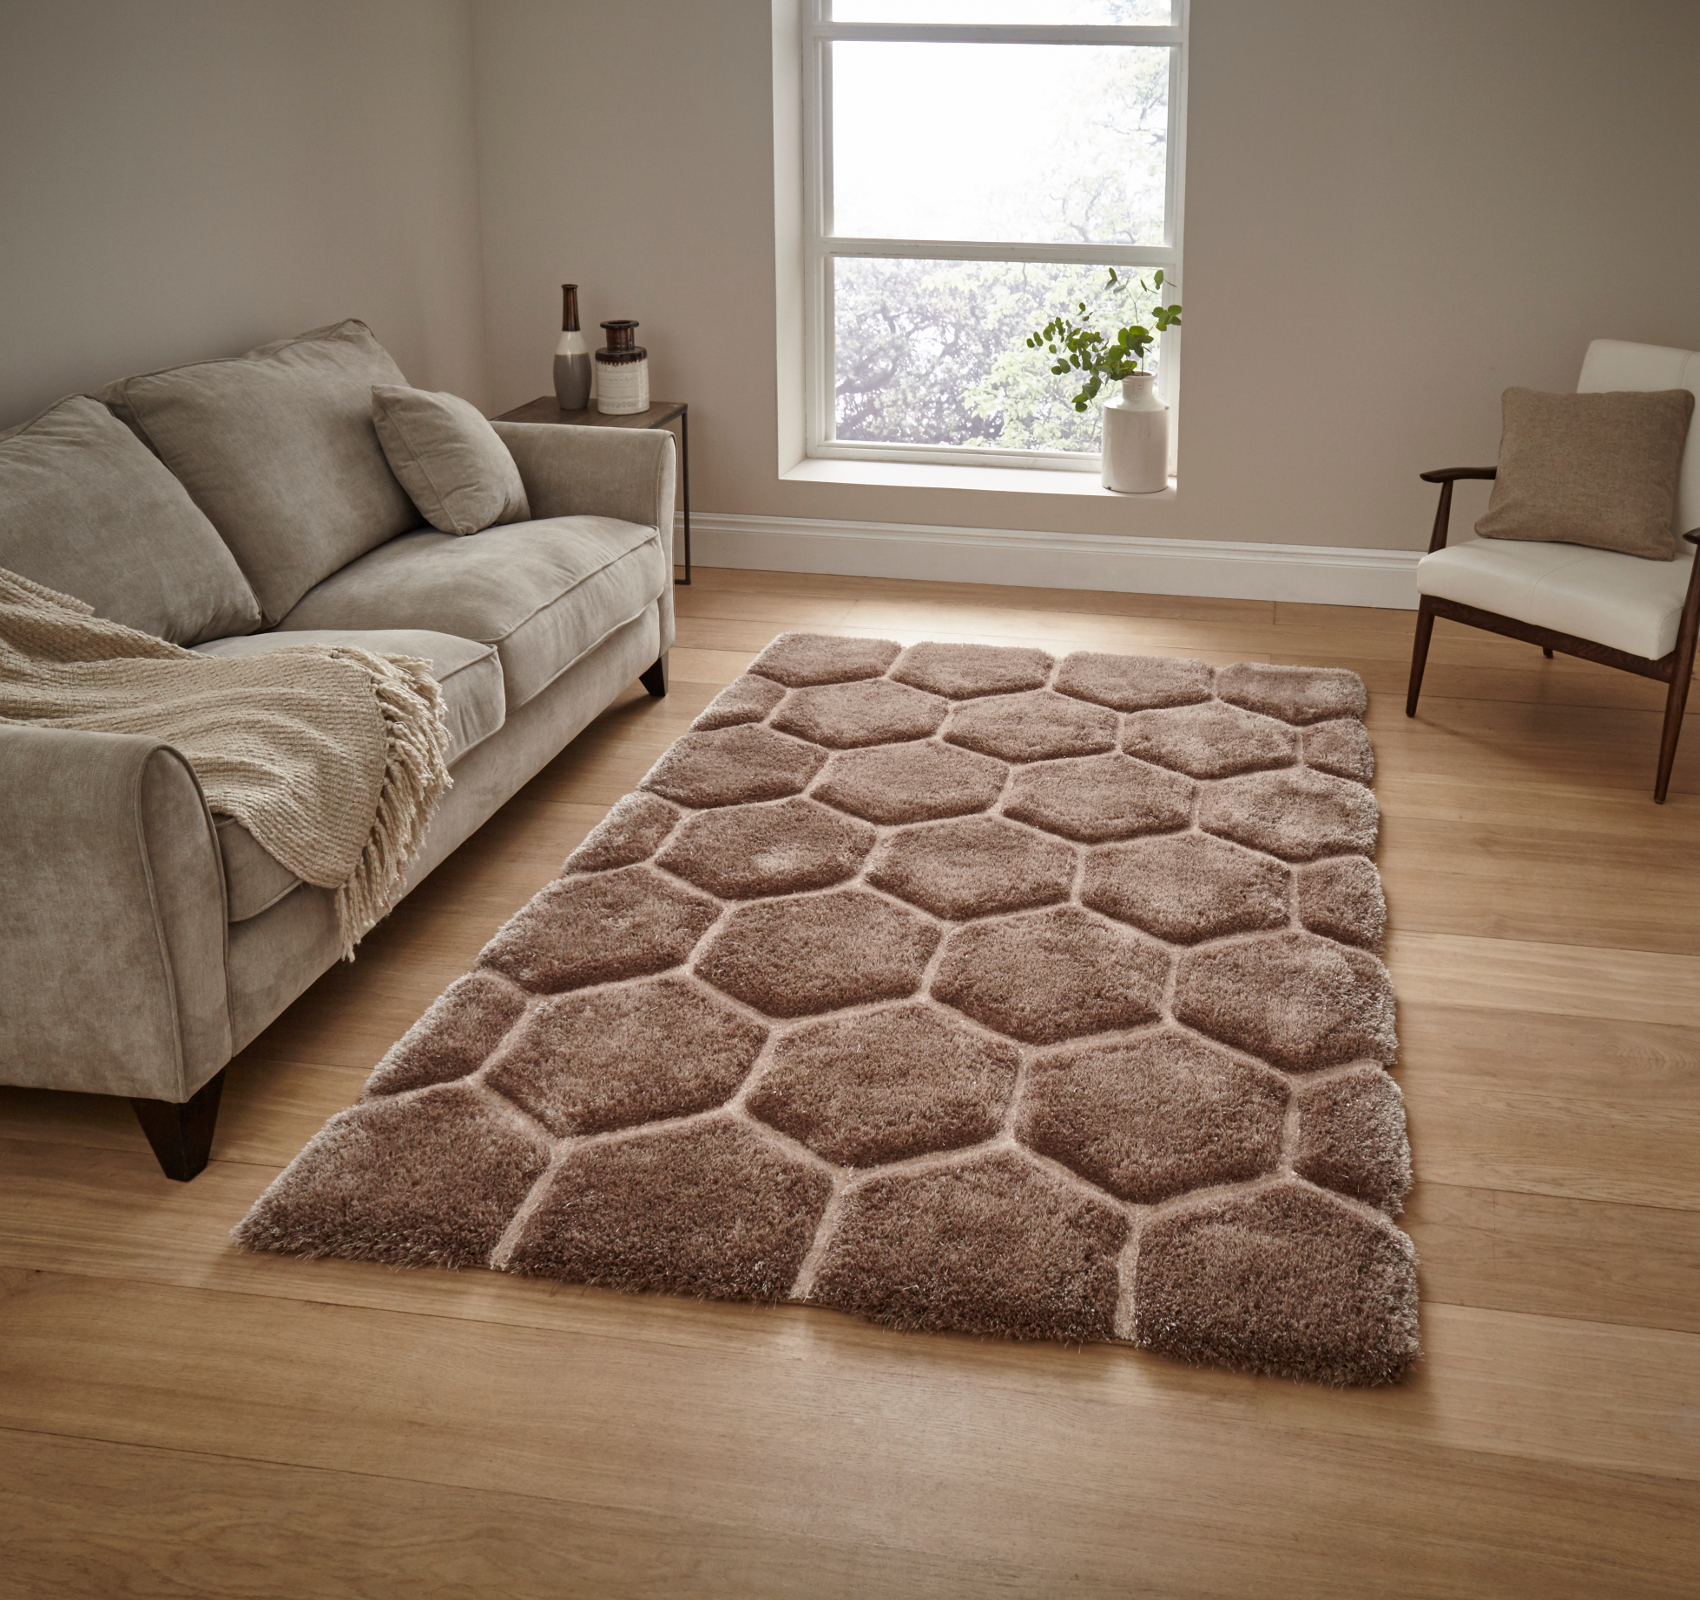 garden home plush safavieh shag today cozy california free shaggy shipping rug overstock taupe product